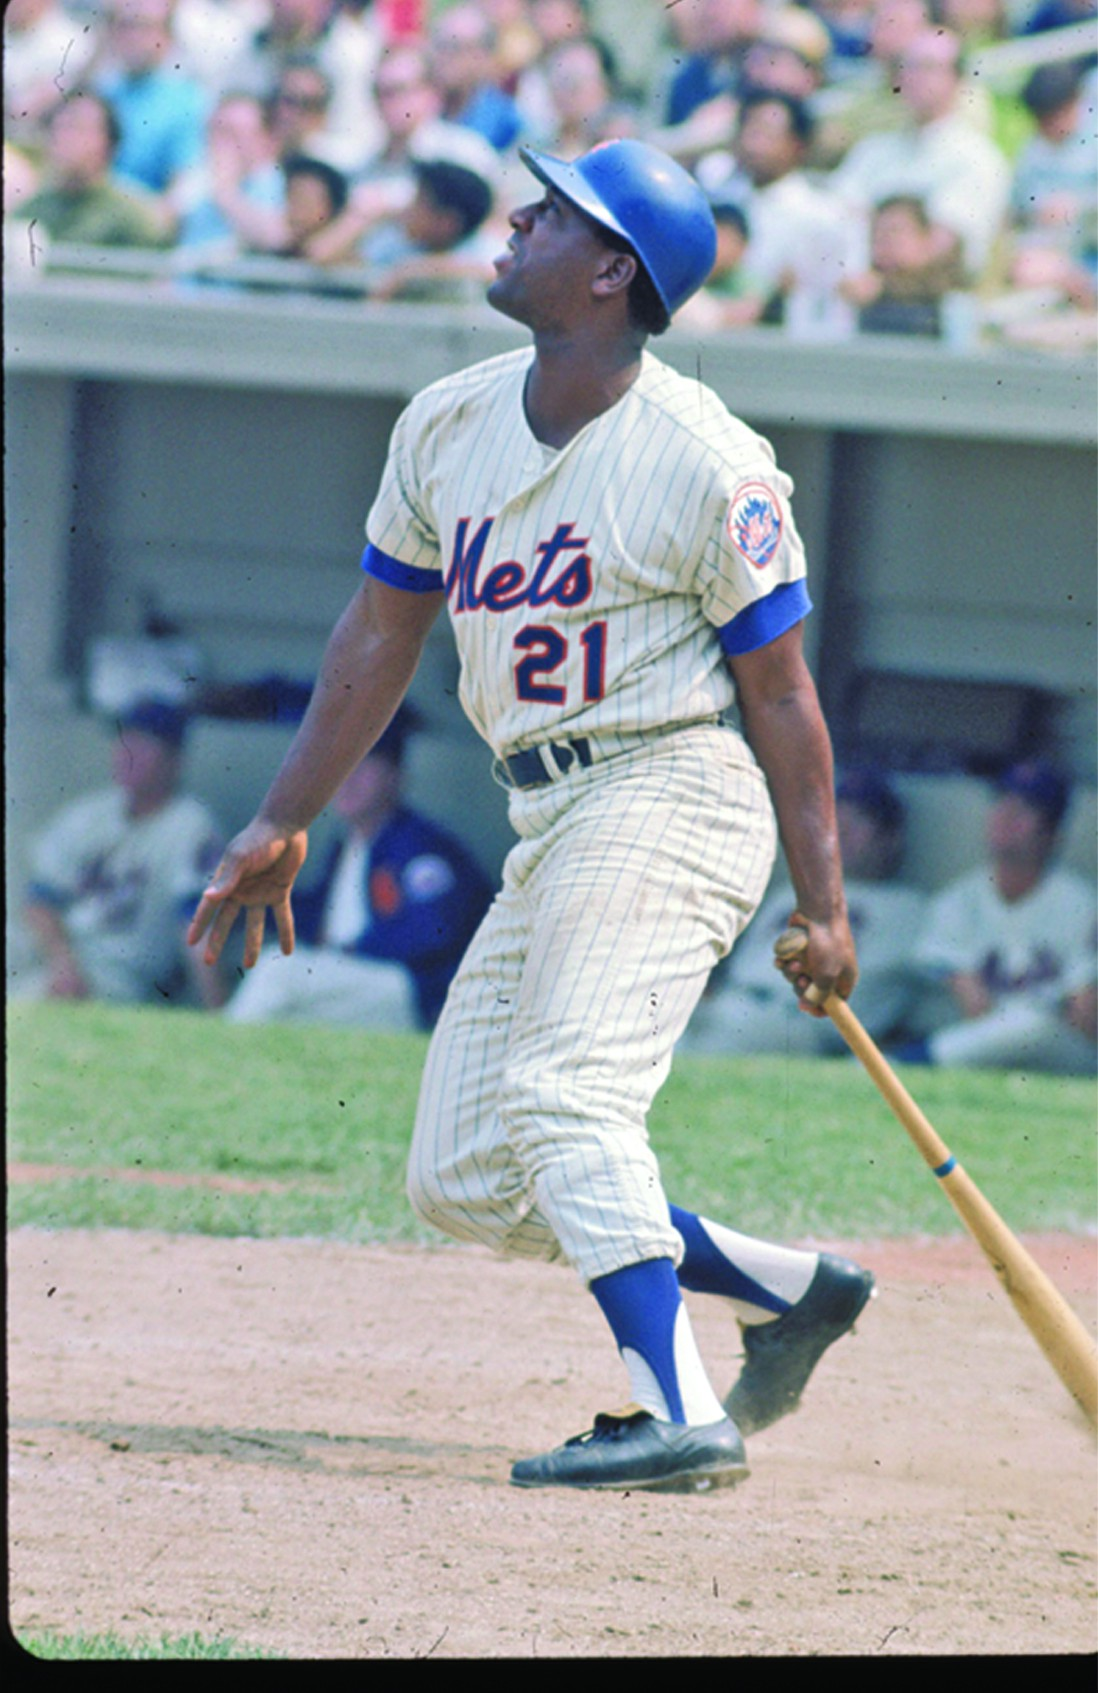 New York Mets' Cleon Jones reacts after making contact with the ball during the 1969 World Series. Photo Courtesy of Mets Insider